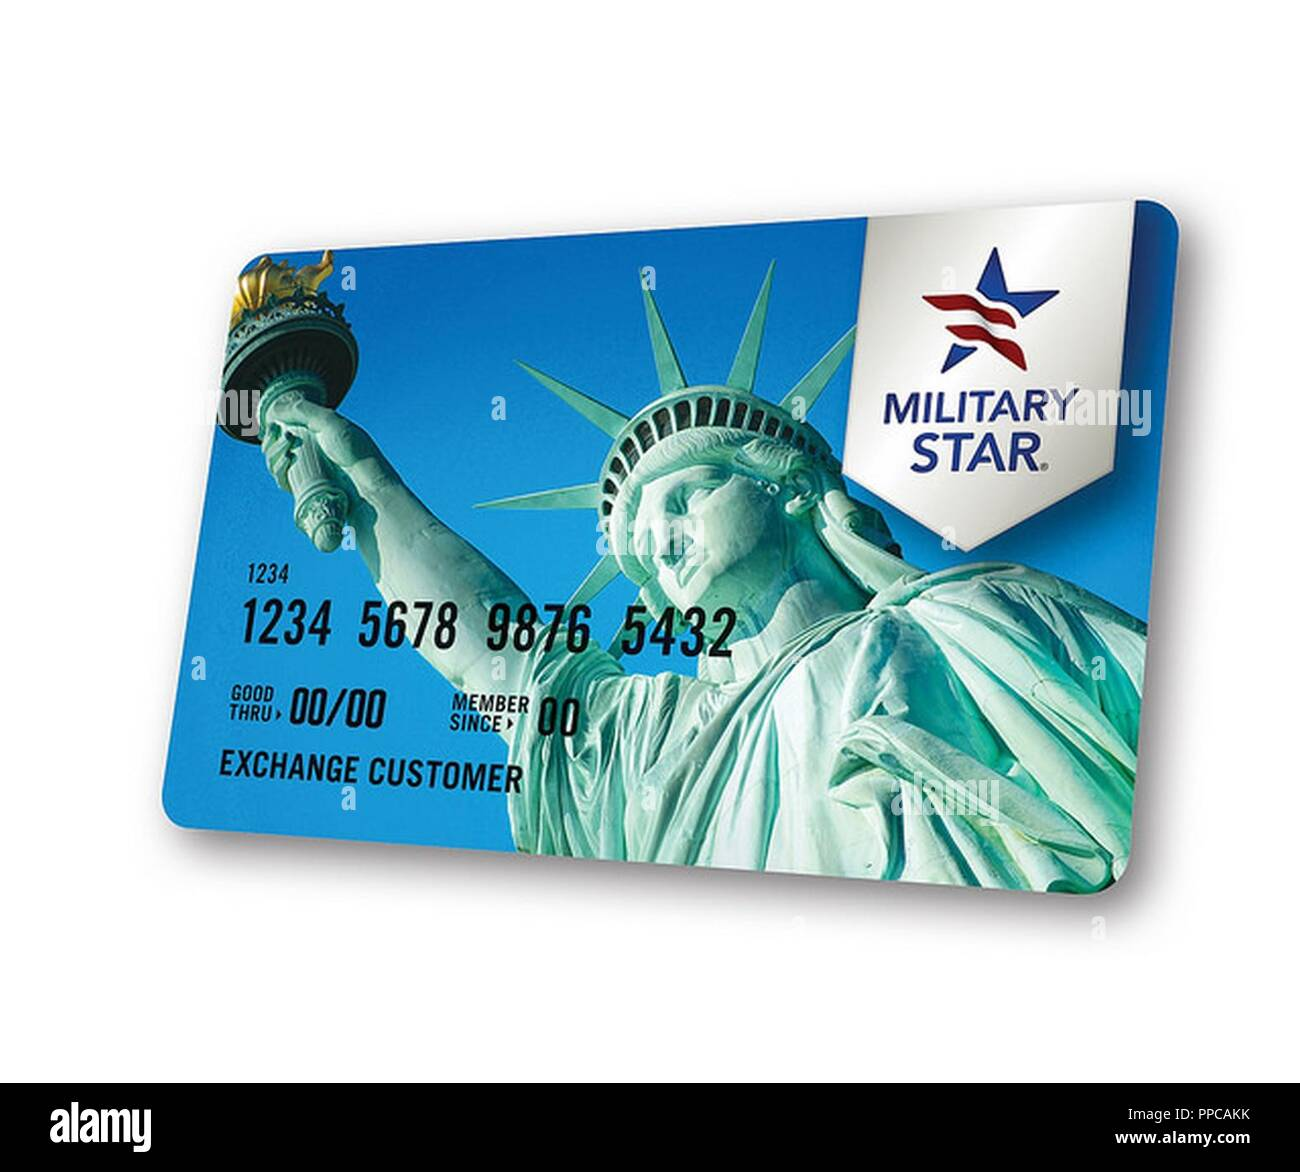 In 2017, the Exchange Credit Program paid cardholders $27.5 million in personal dividends through rewards cards shoppers earned by using a MILITARY STAR card at exchanges in-store and online, commissaries and Armed Forces Recreation Centers. - Stock Image